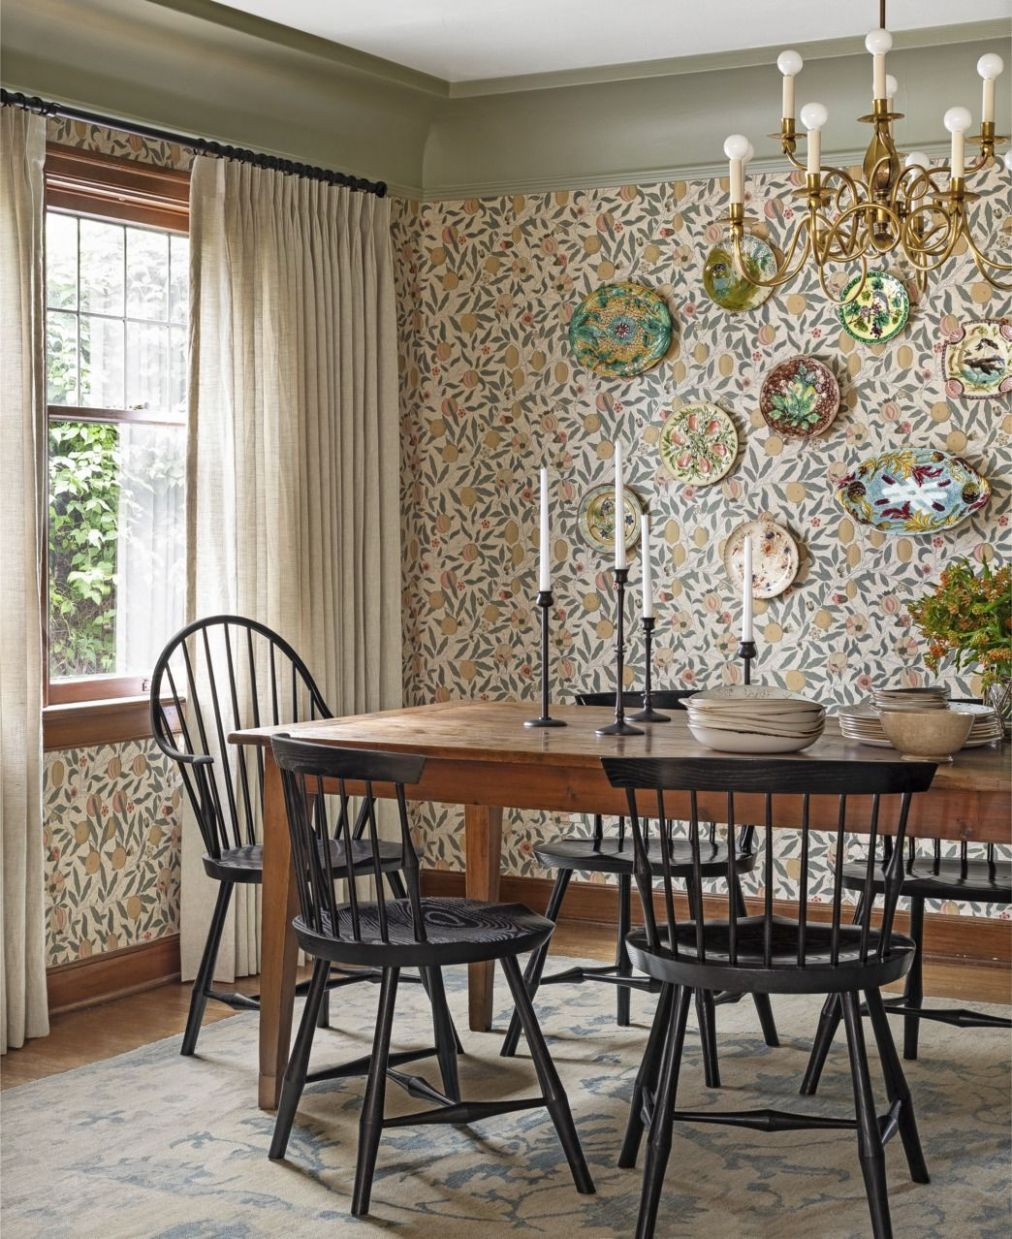 12 Best Dining Room Decorating Ideas - Country Dining Room Decor - dining room theme ideas